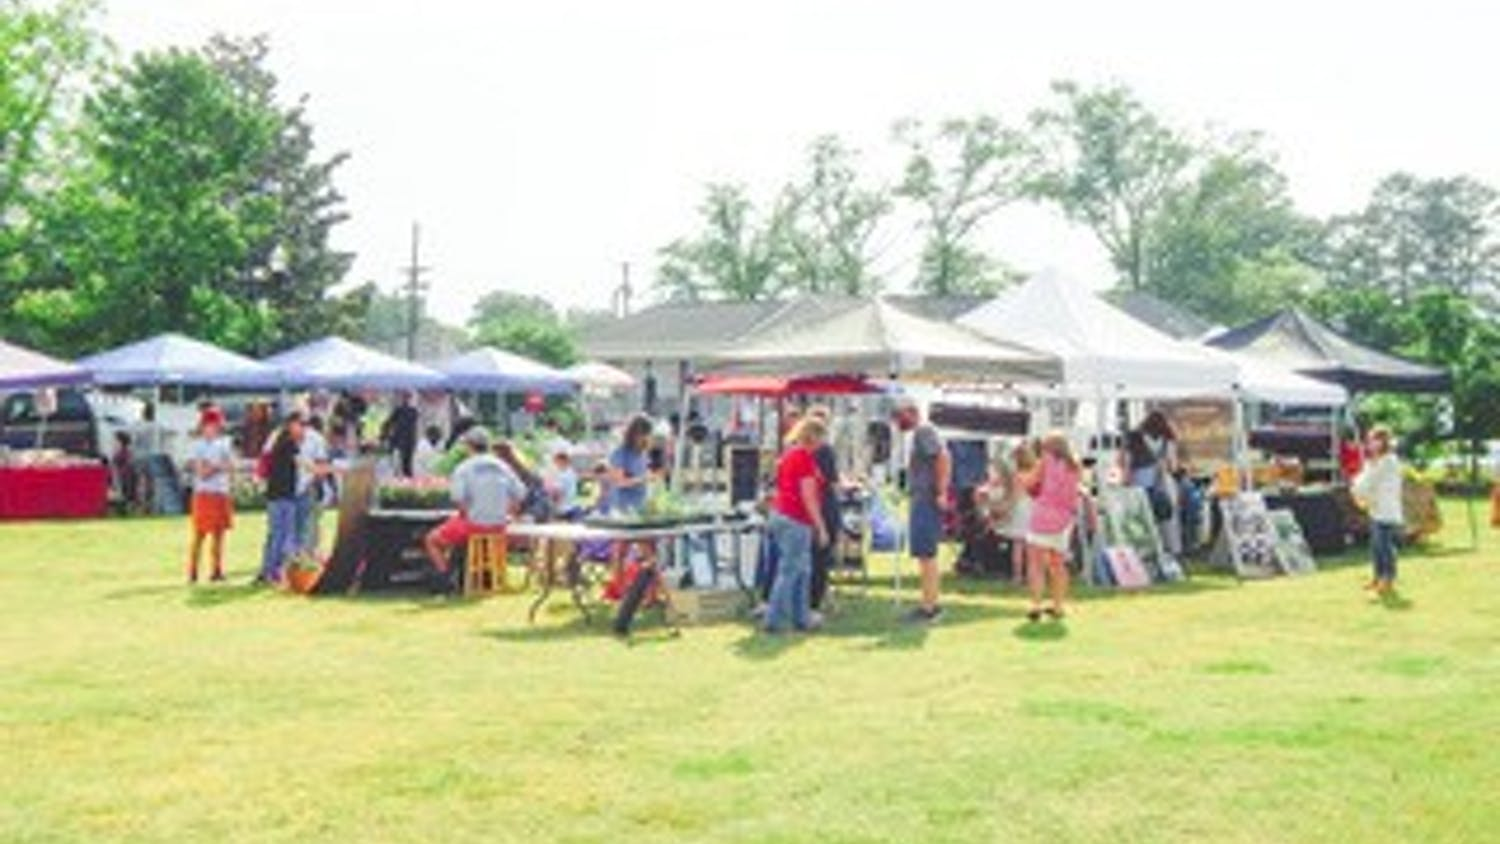 A view of the Blythewood Farmers Market, which has multiple booths set up.